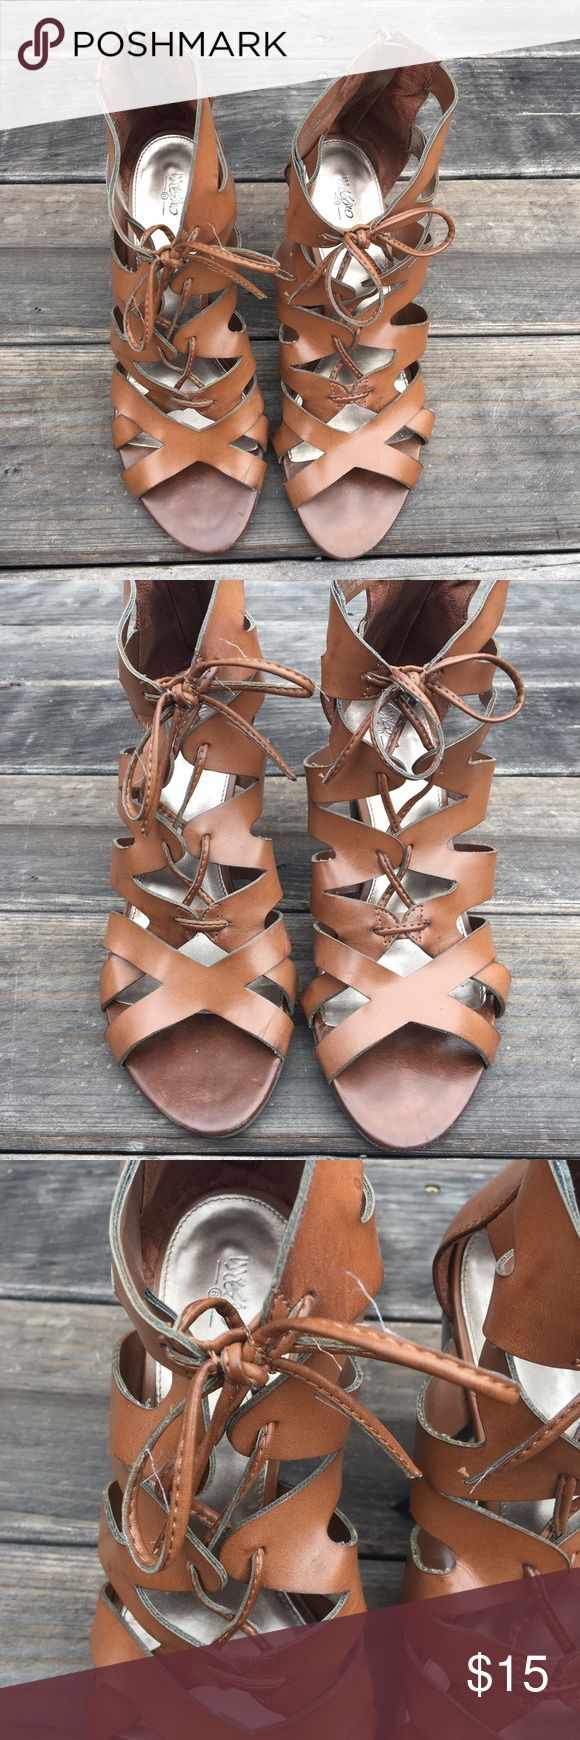 """Mossimo Brown Strappy Sandles Size 9 Mossimo brand brown strappy heeled sandles. Size 9. Zipper on heel with YKK imprint. Tie in front for decoration that """"laces"""" sandles together but is unnecessary for use. Preowned and worn a few times. Some wear. Few a"""